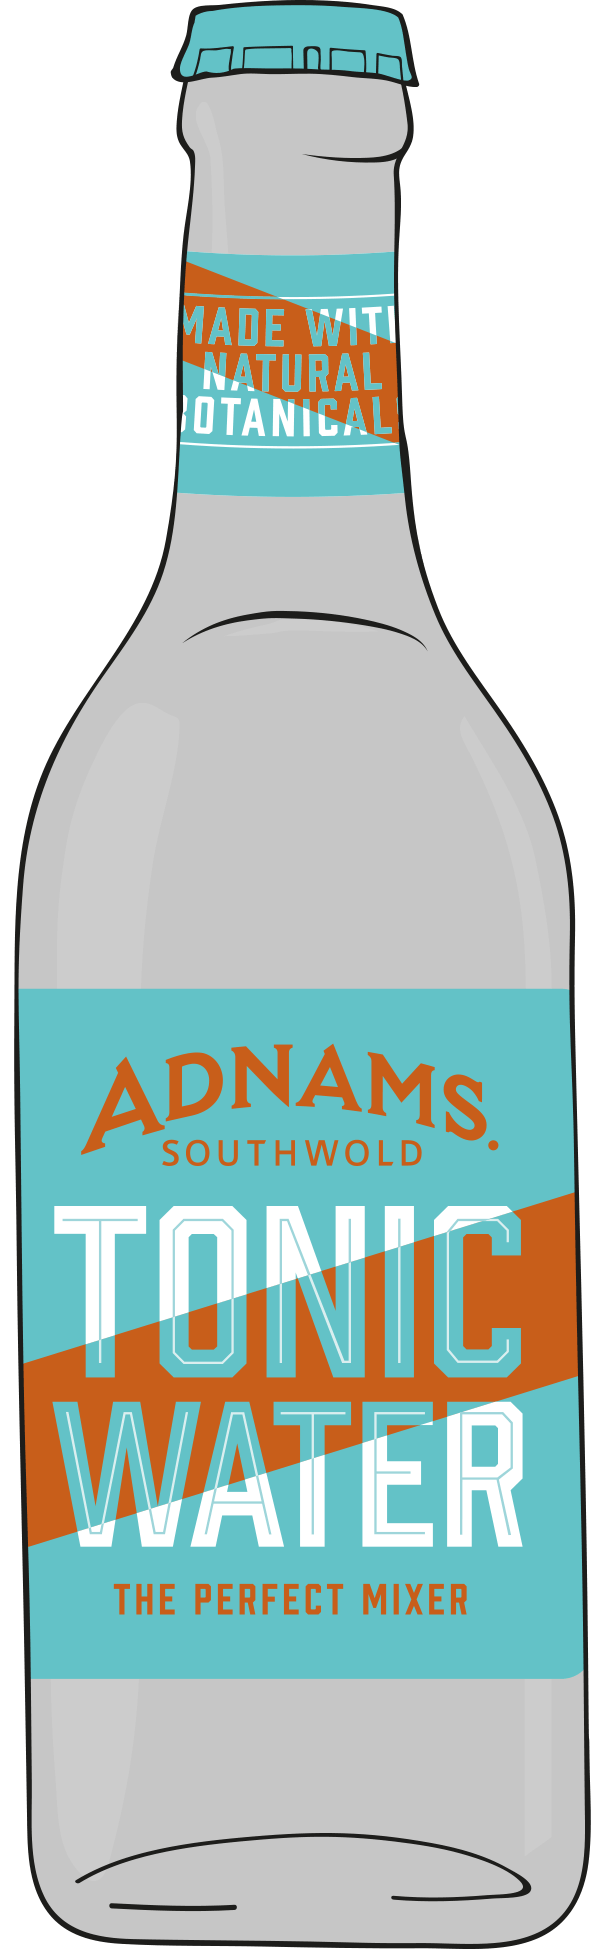 Best Adnams Tonic Water Stockists